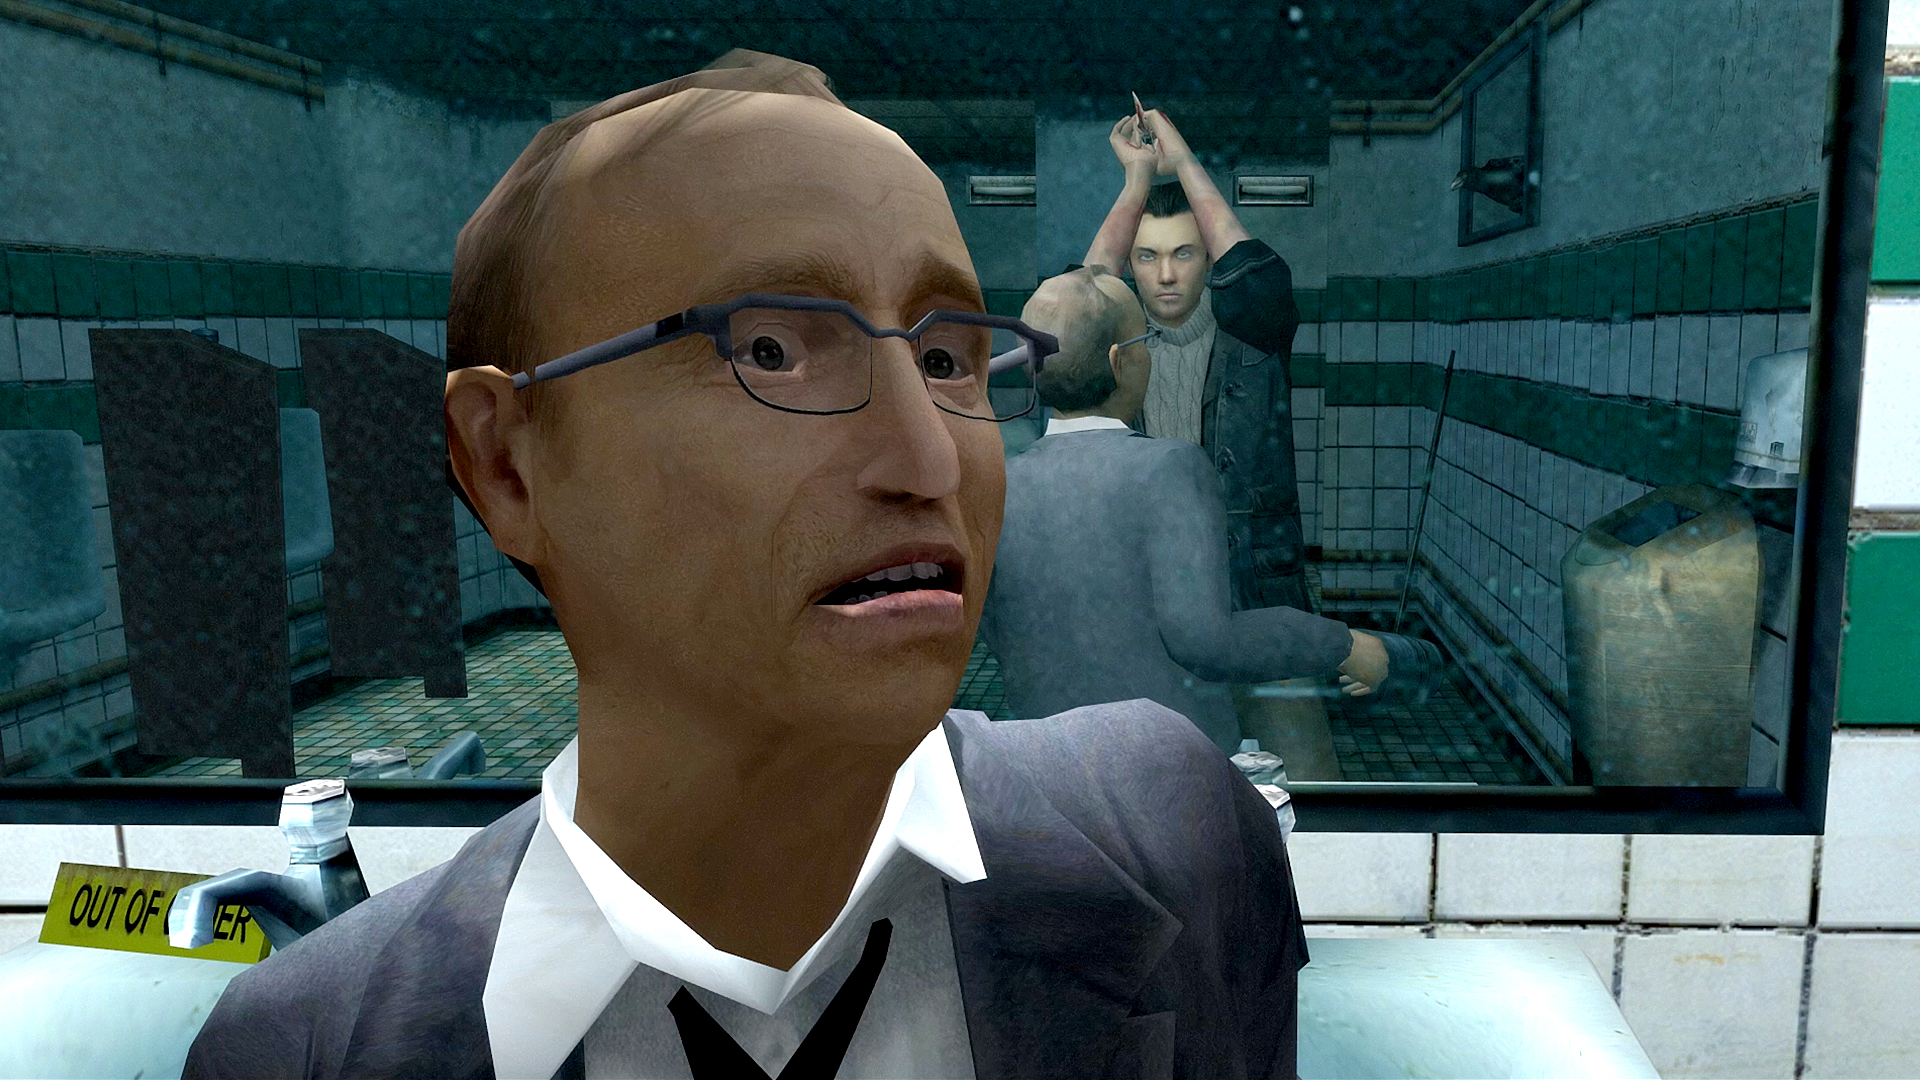 Fahrenheit Indigo Prophecy Remastered se lanzó ayer en Steam.